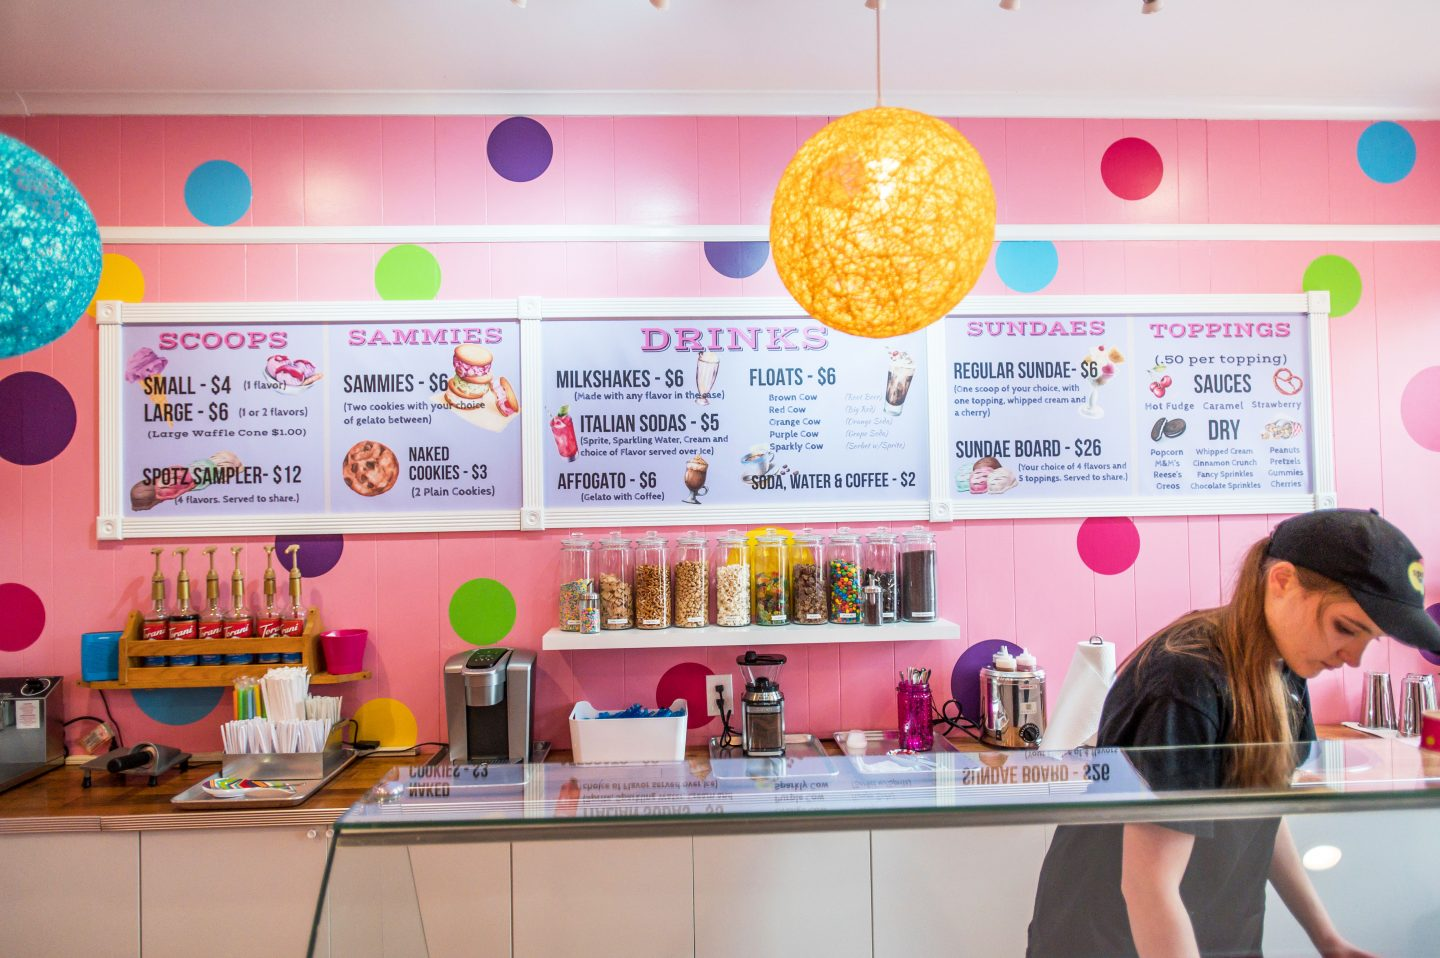 Pink walls with colorful decor of a gelato shop